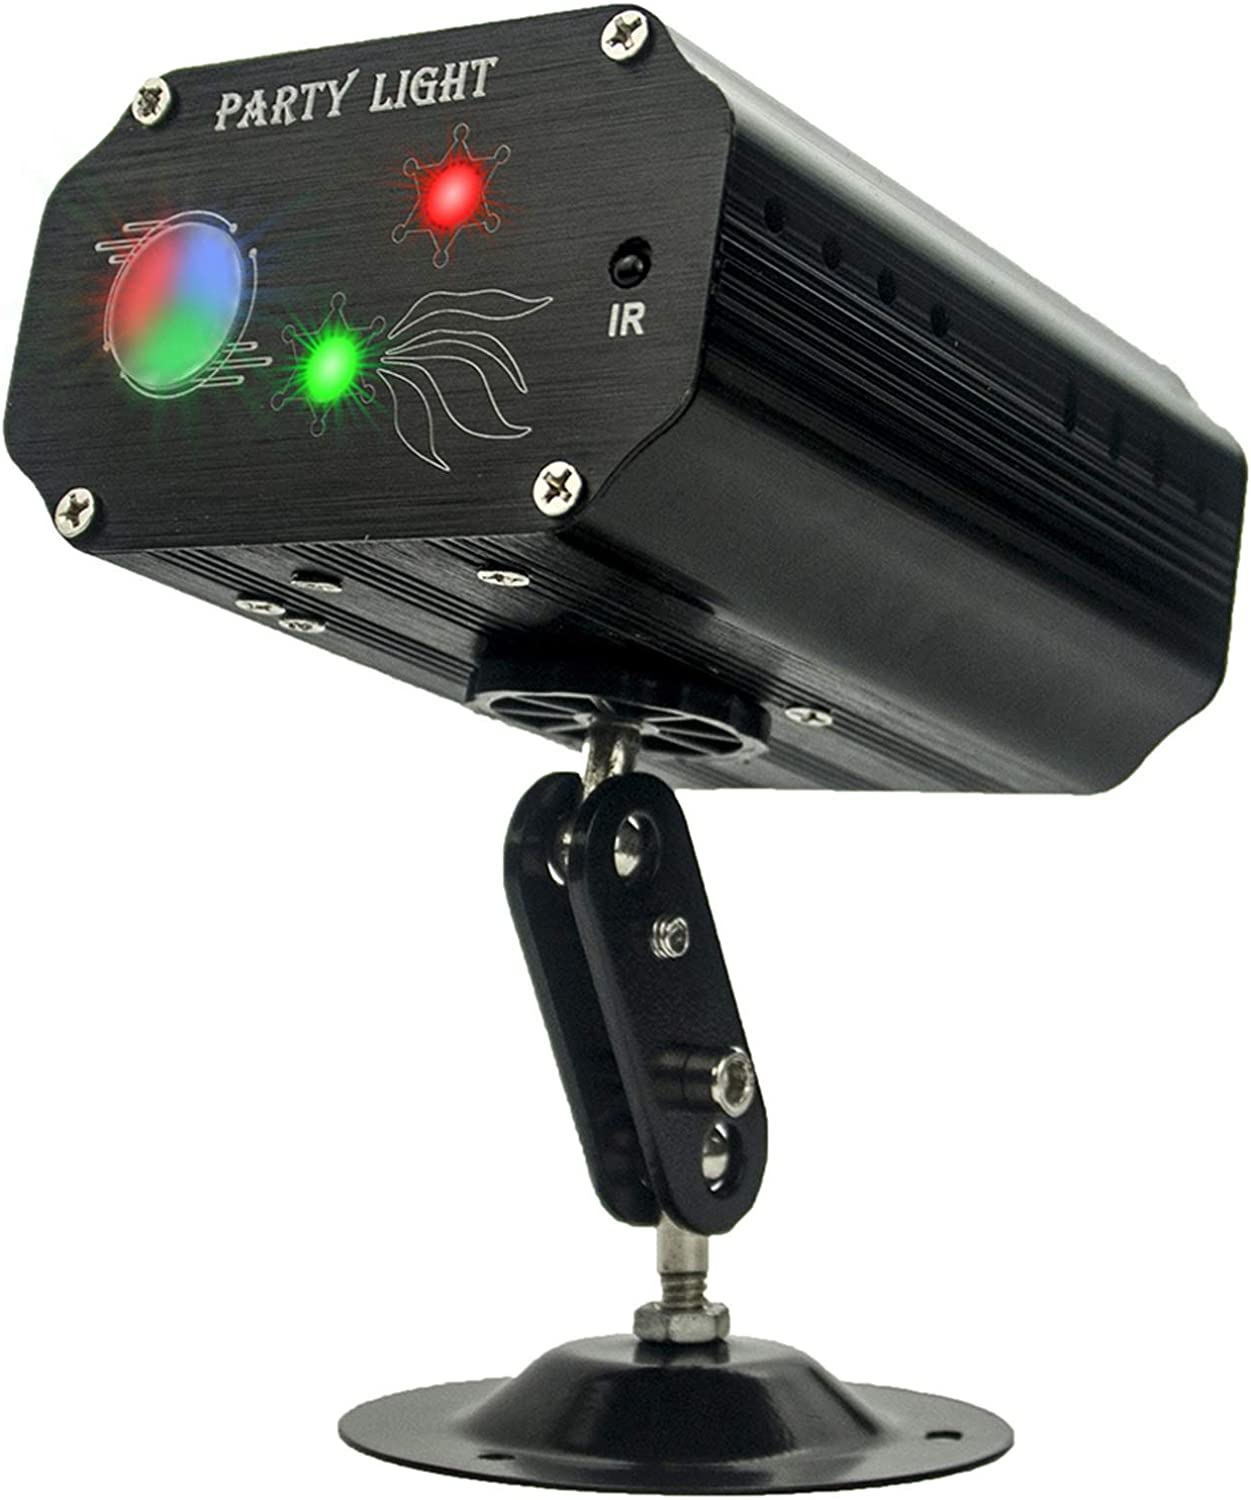 Stage Lights Mini Los Angeles Mall Dancing Remote for Ranking TOP19 Used Control Di Dj